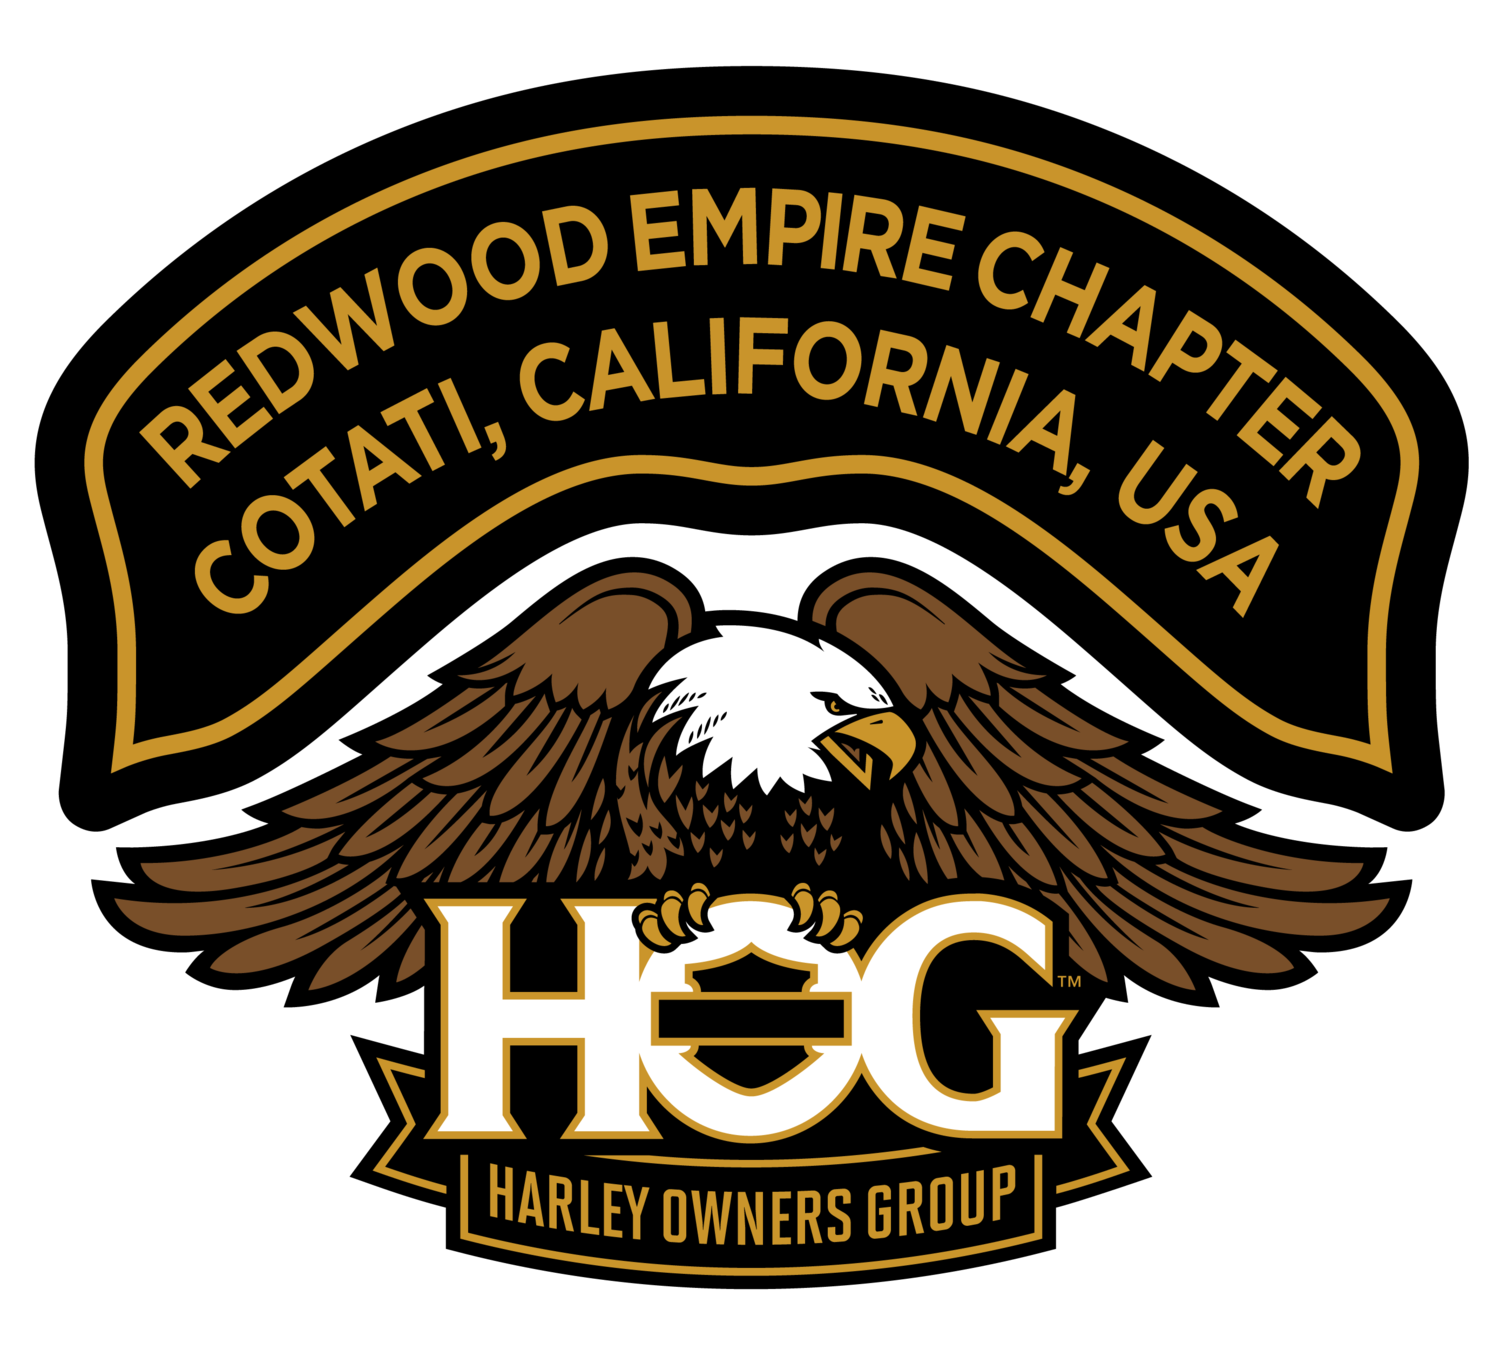 Redwood Empire Harley Owners Group (HOG)